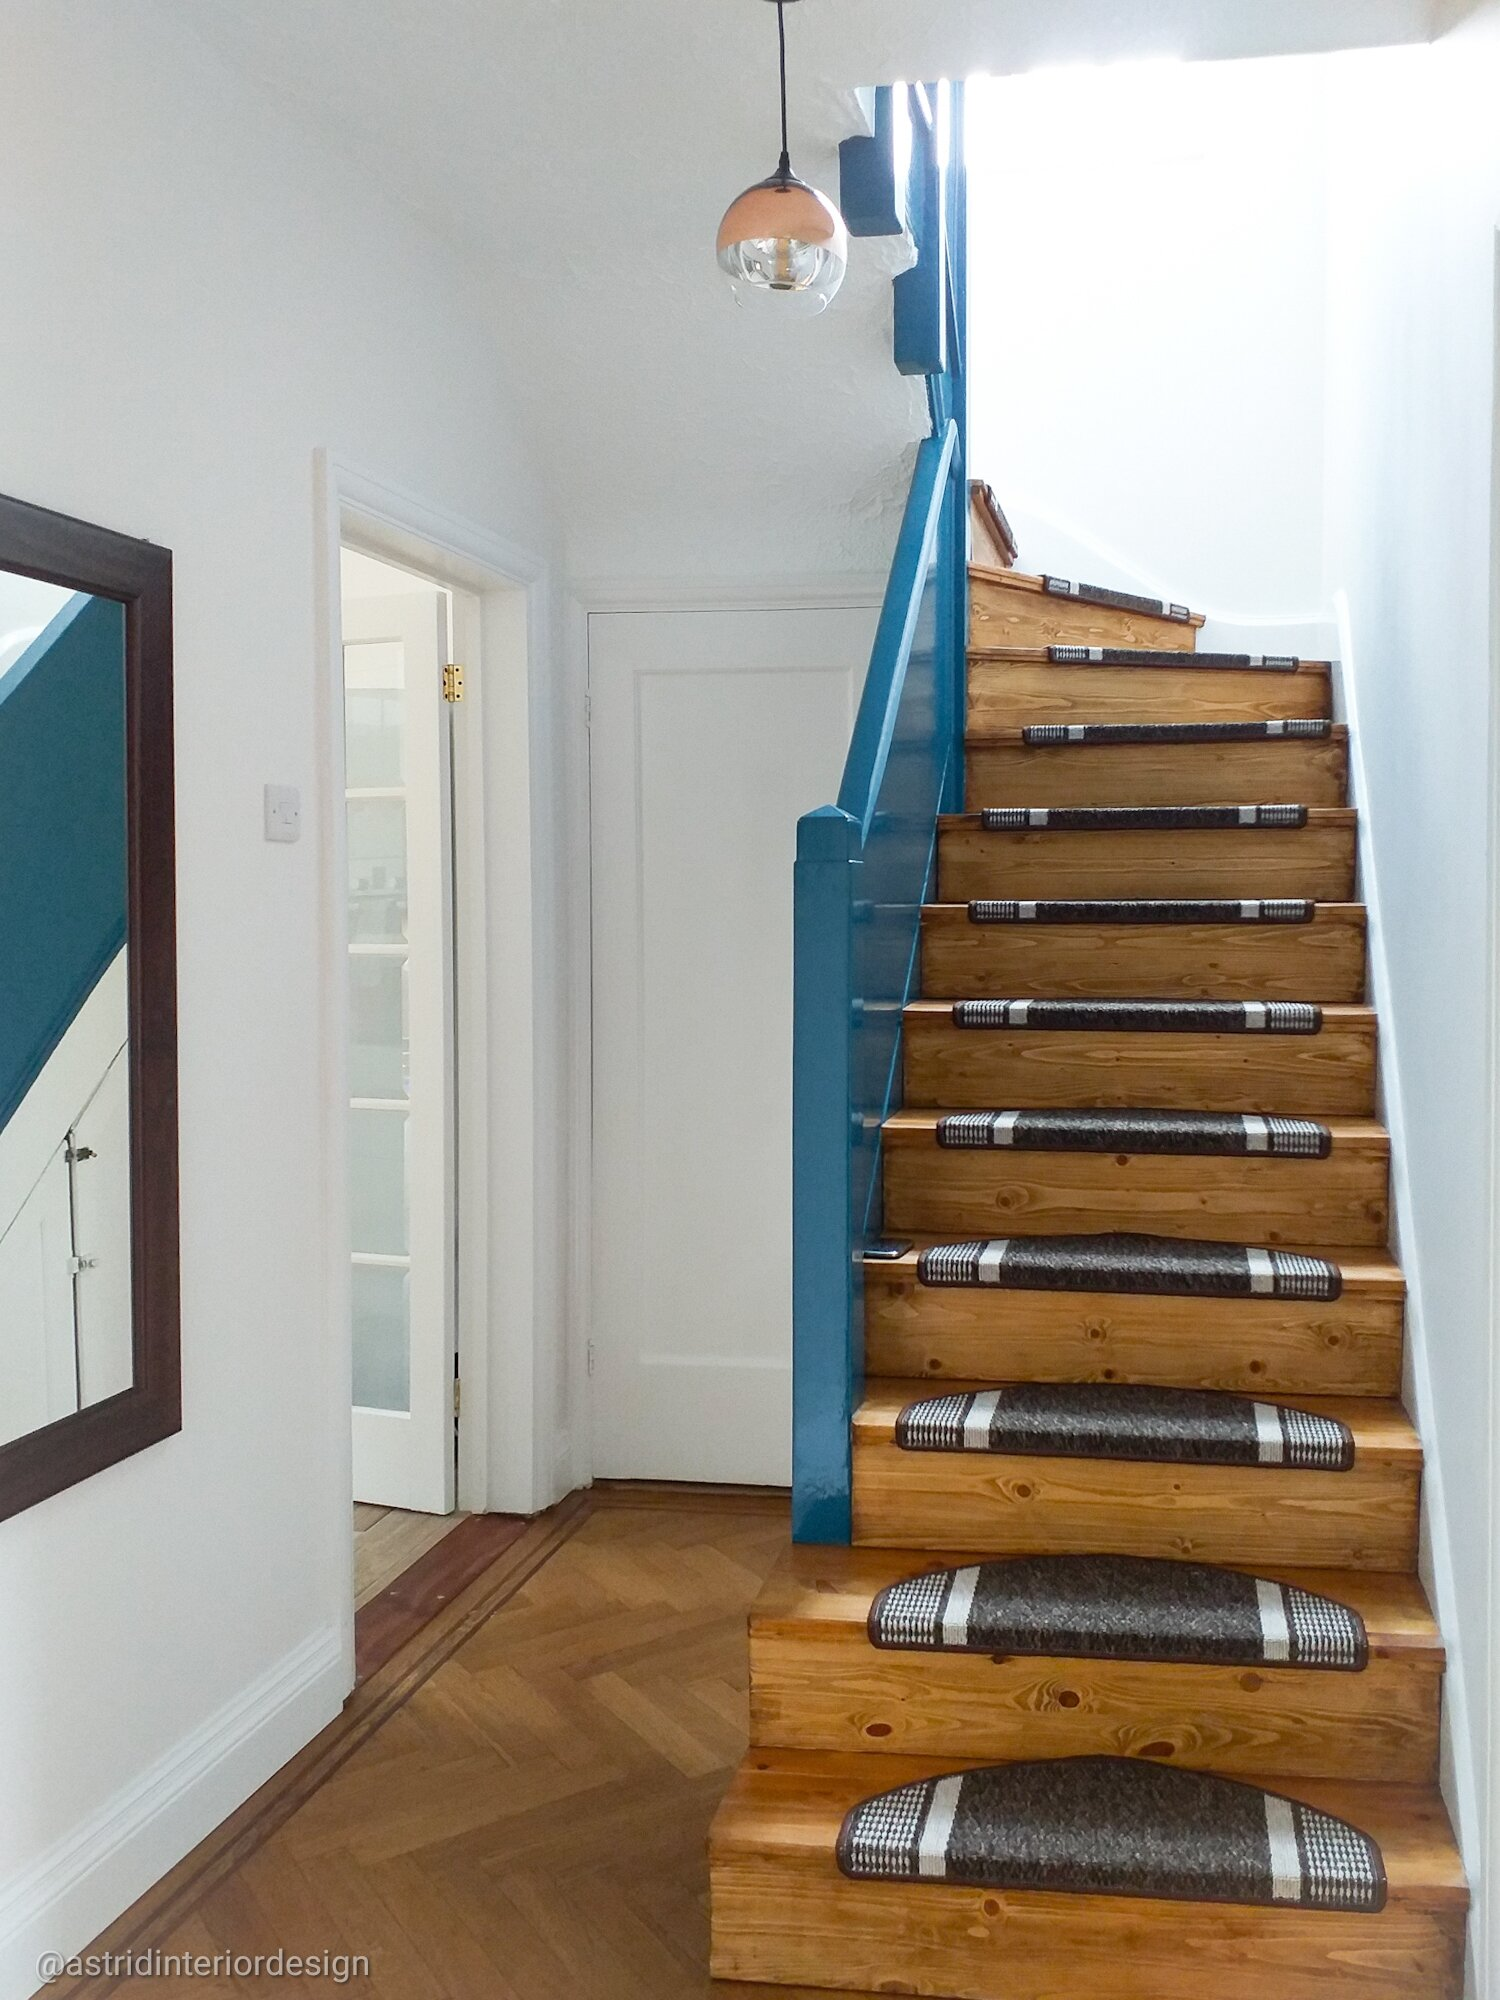 staircase view 2.jpg